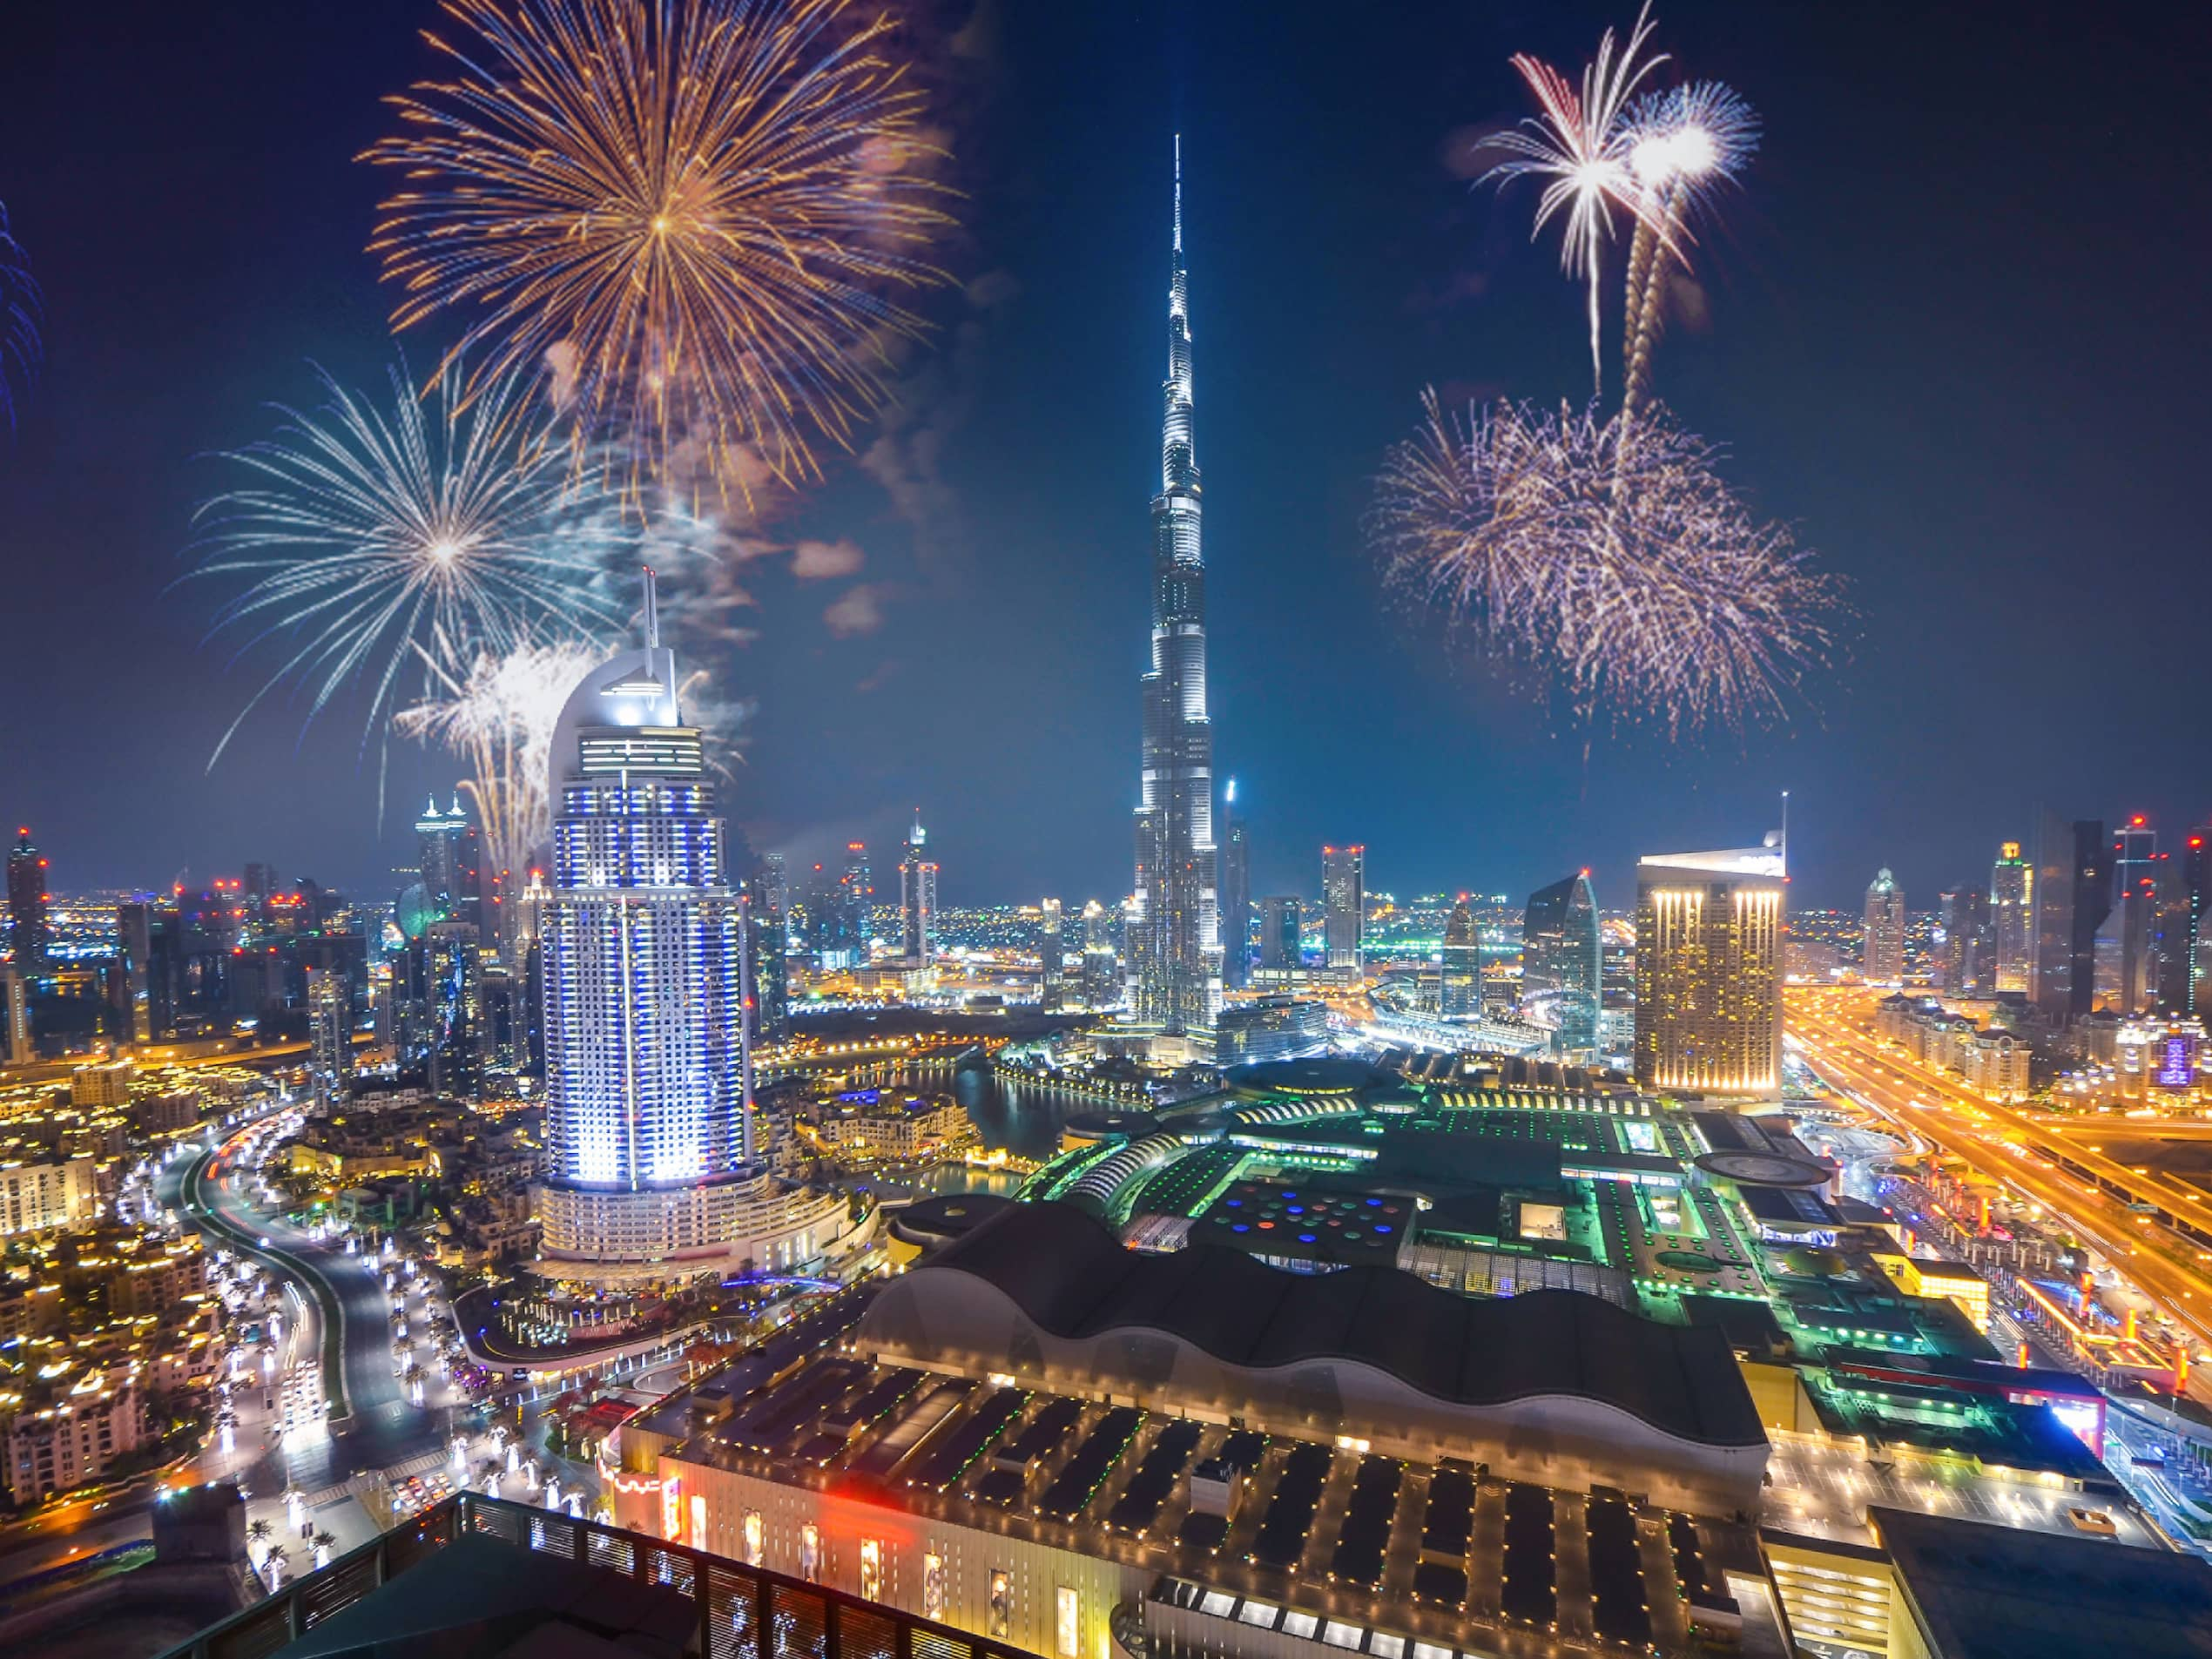 Make 2021 a Year to Remember at a New Year's Eve Party in Dubai